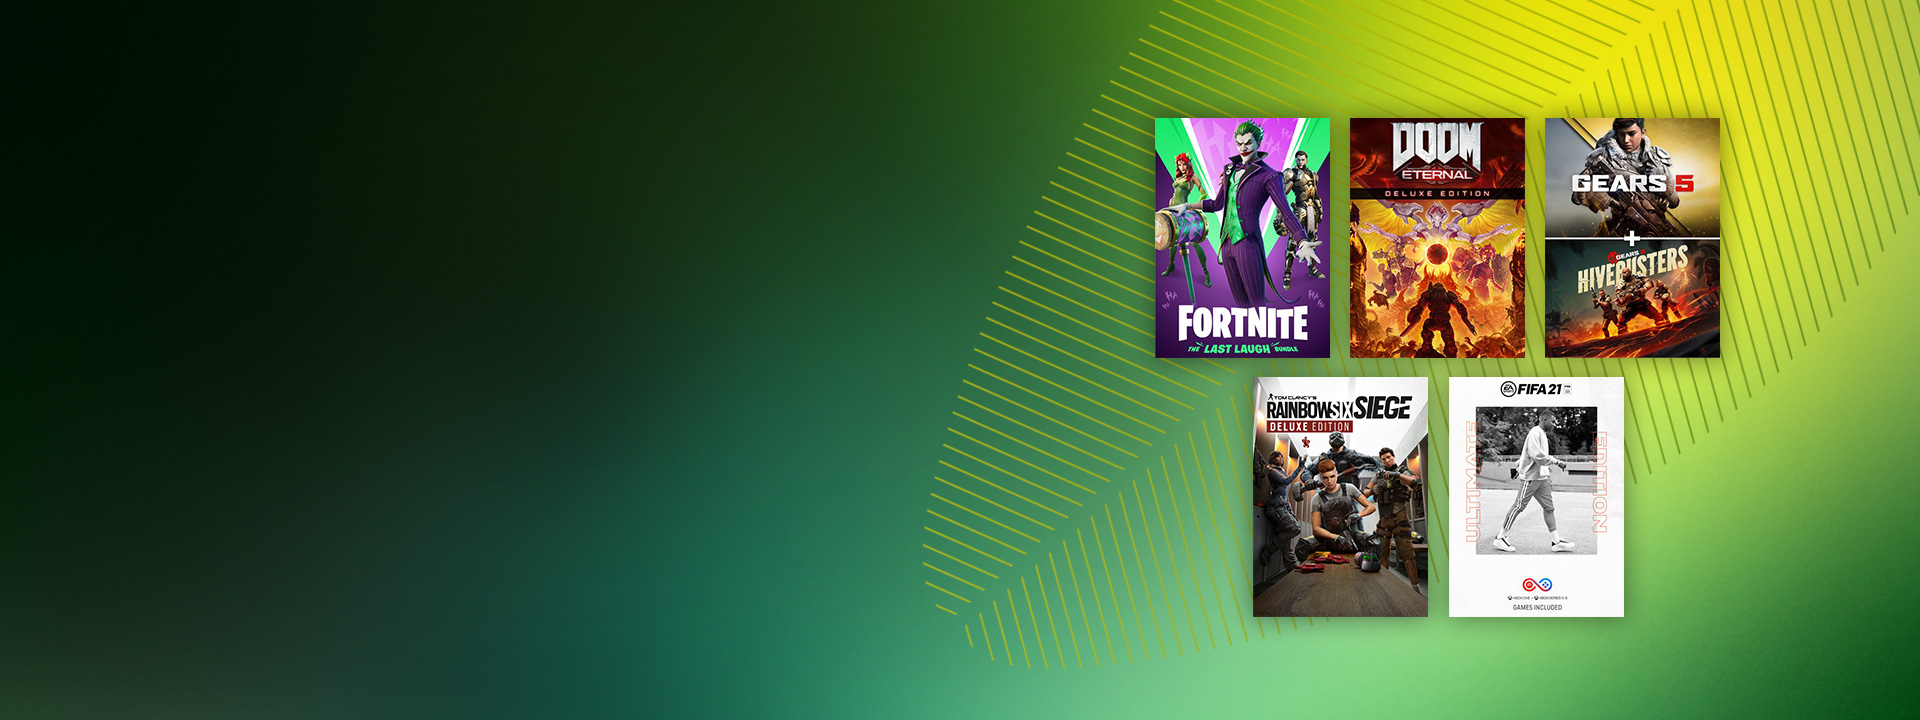 A collection of games available in the Spring Sale on a green background.